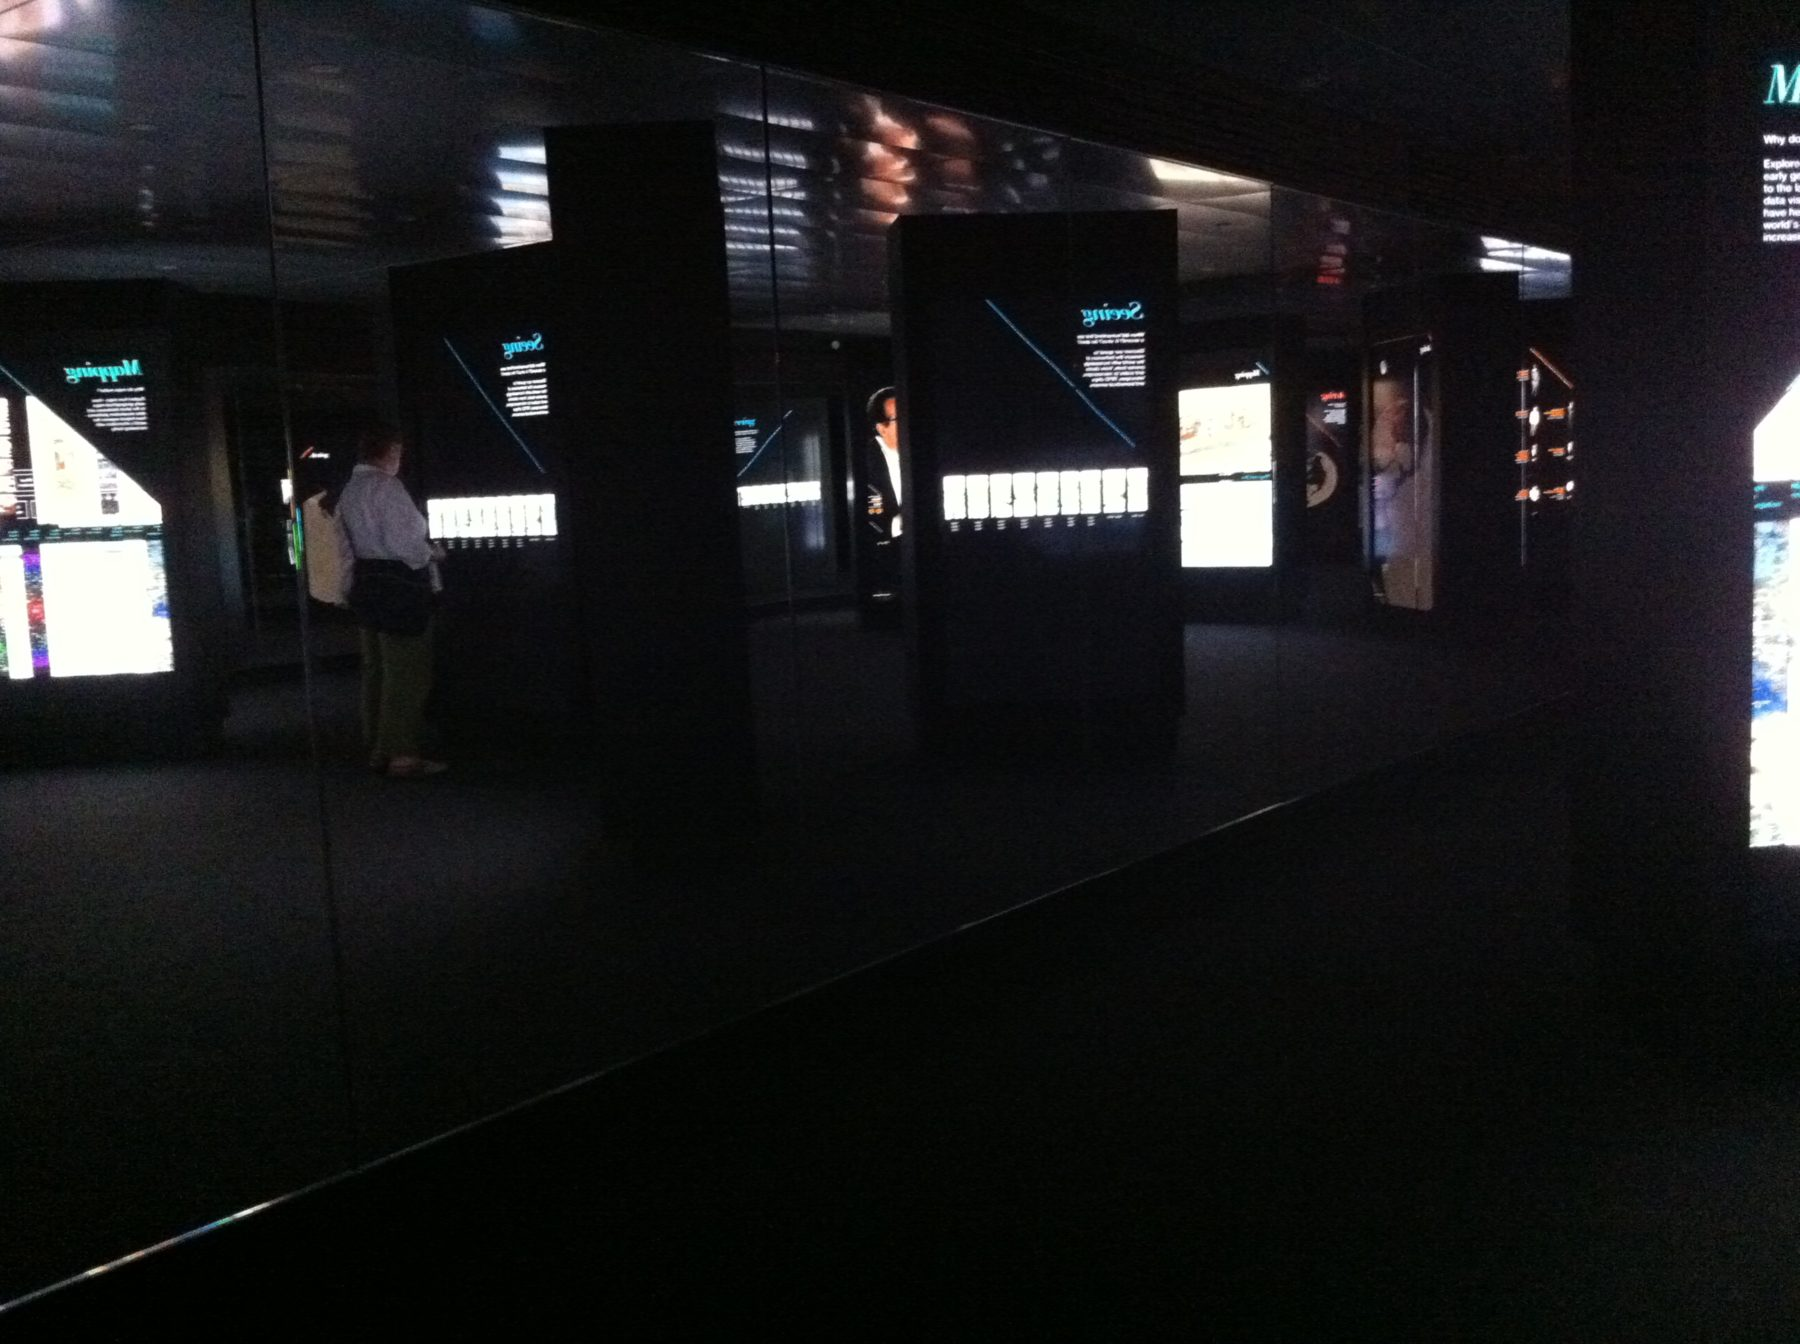 A dark room full of interactive screens.